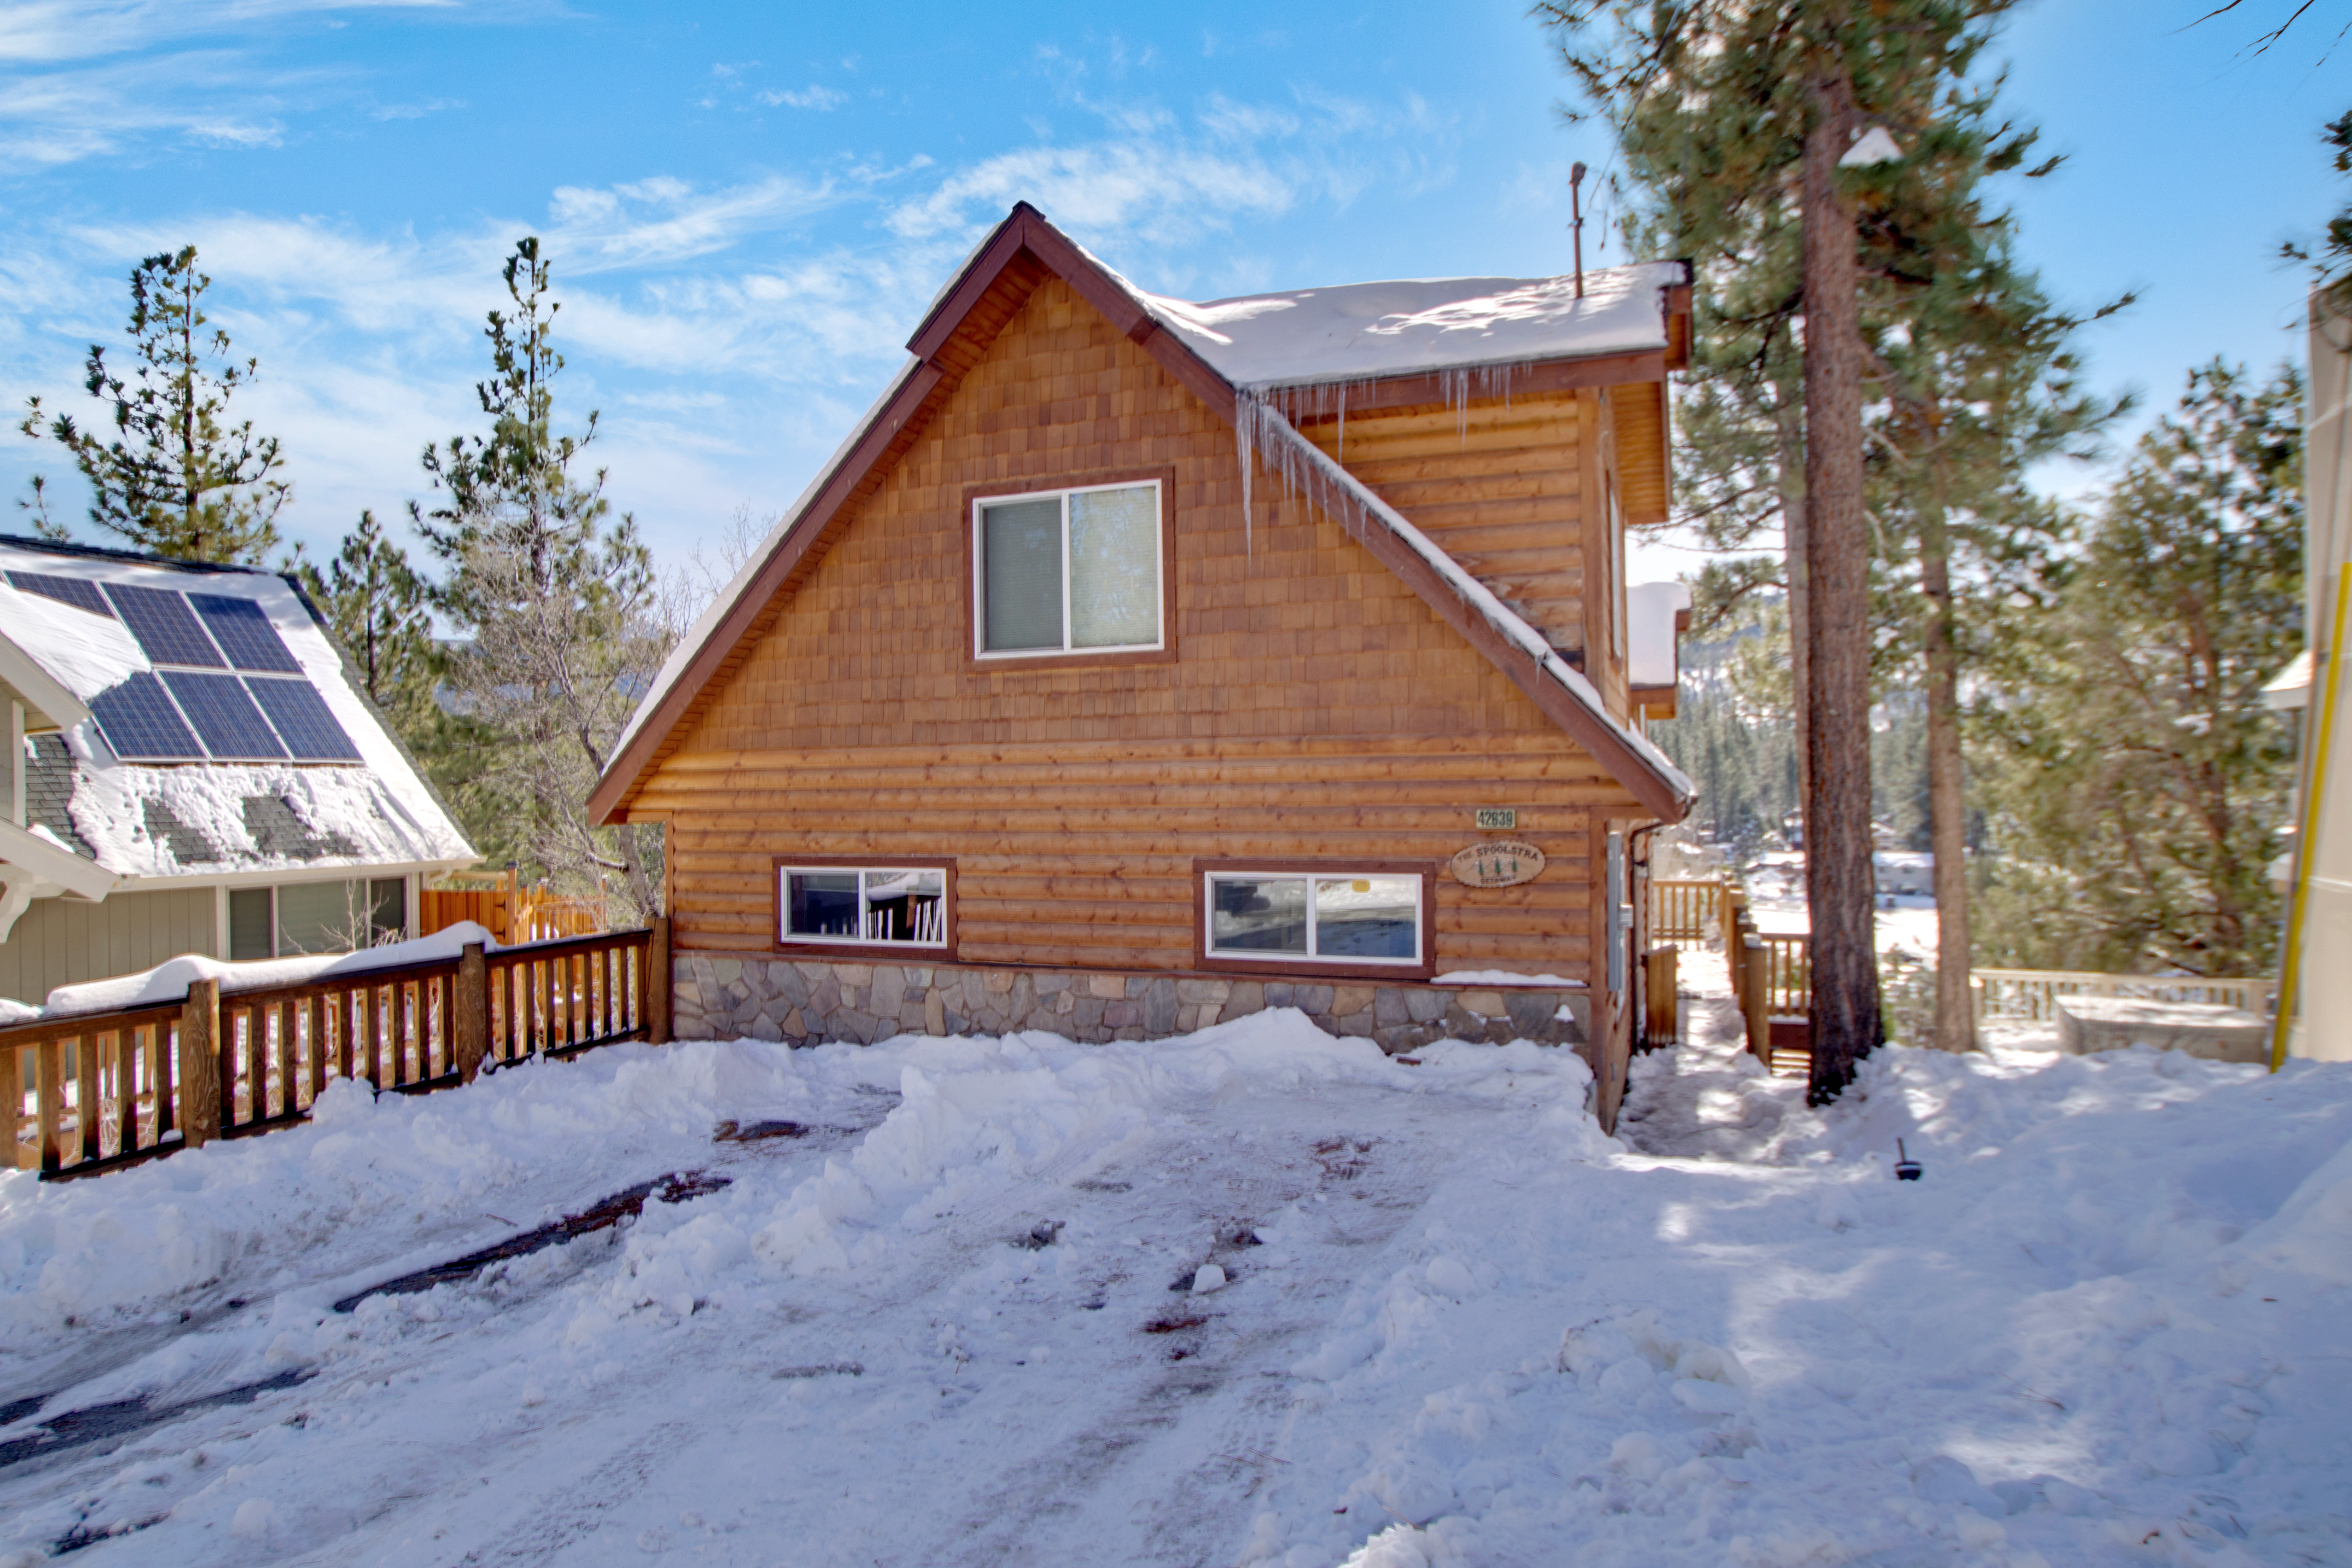 hunter bear lodge accommodations ca cabins rental in vacation hunters s california rent big for